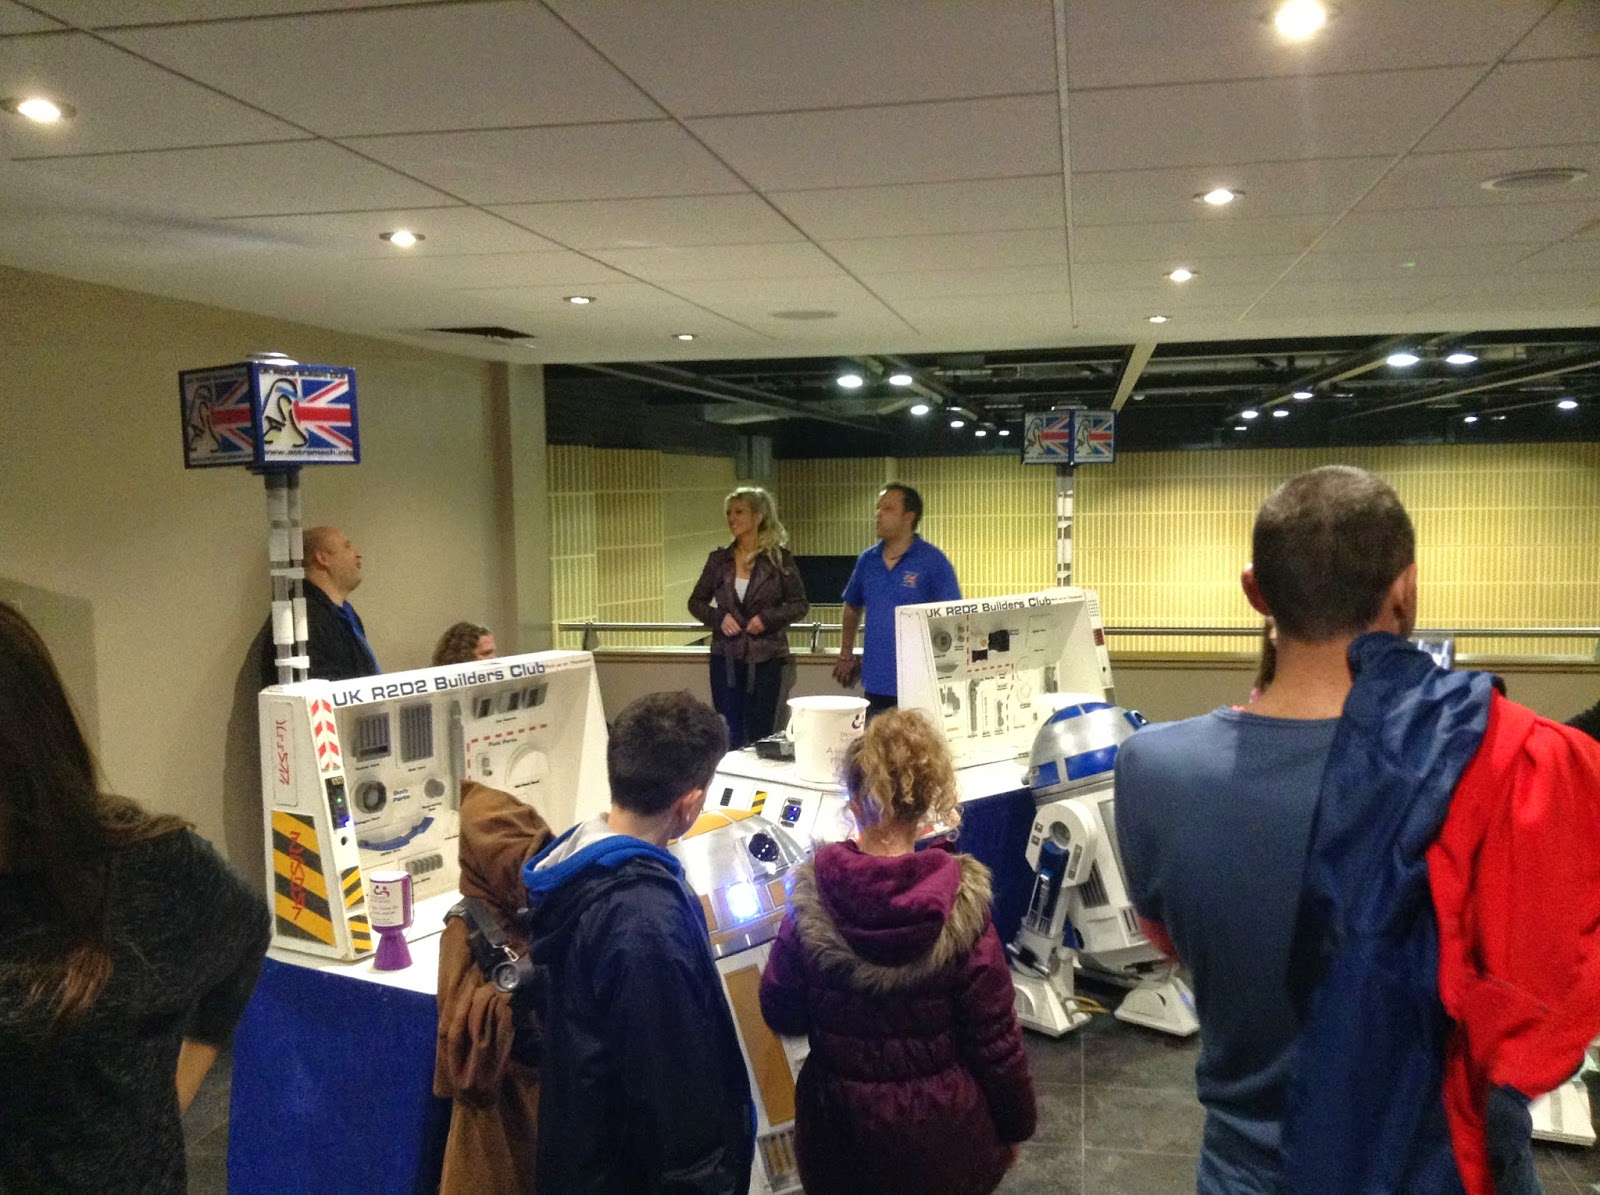 UK R2 Builders Club stand